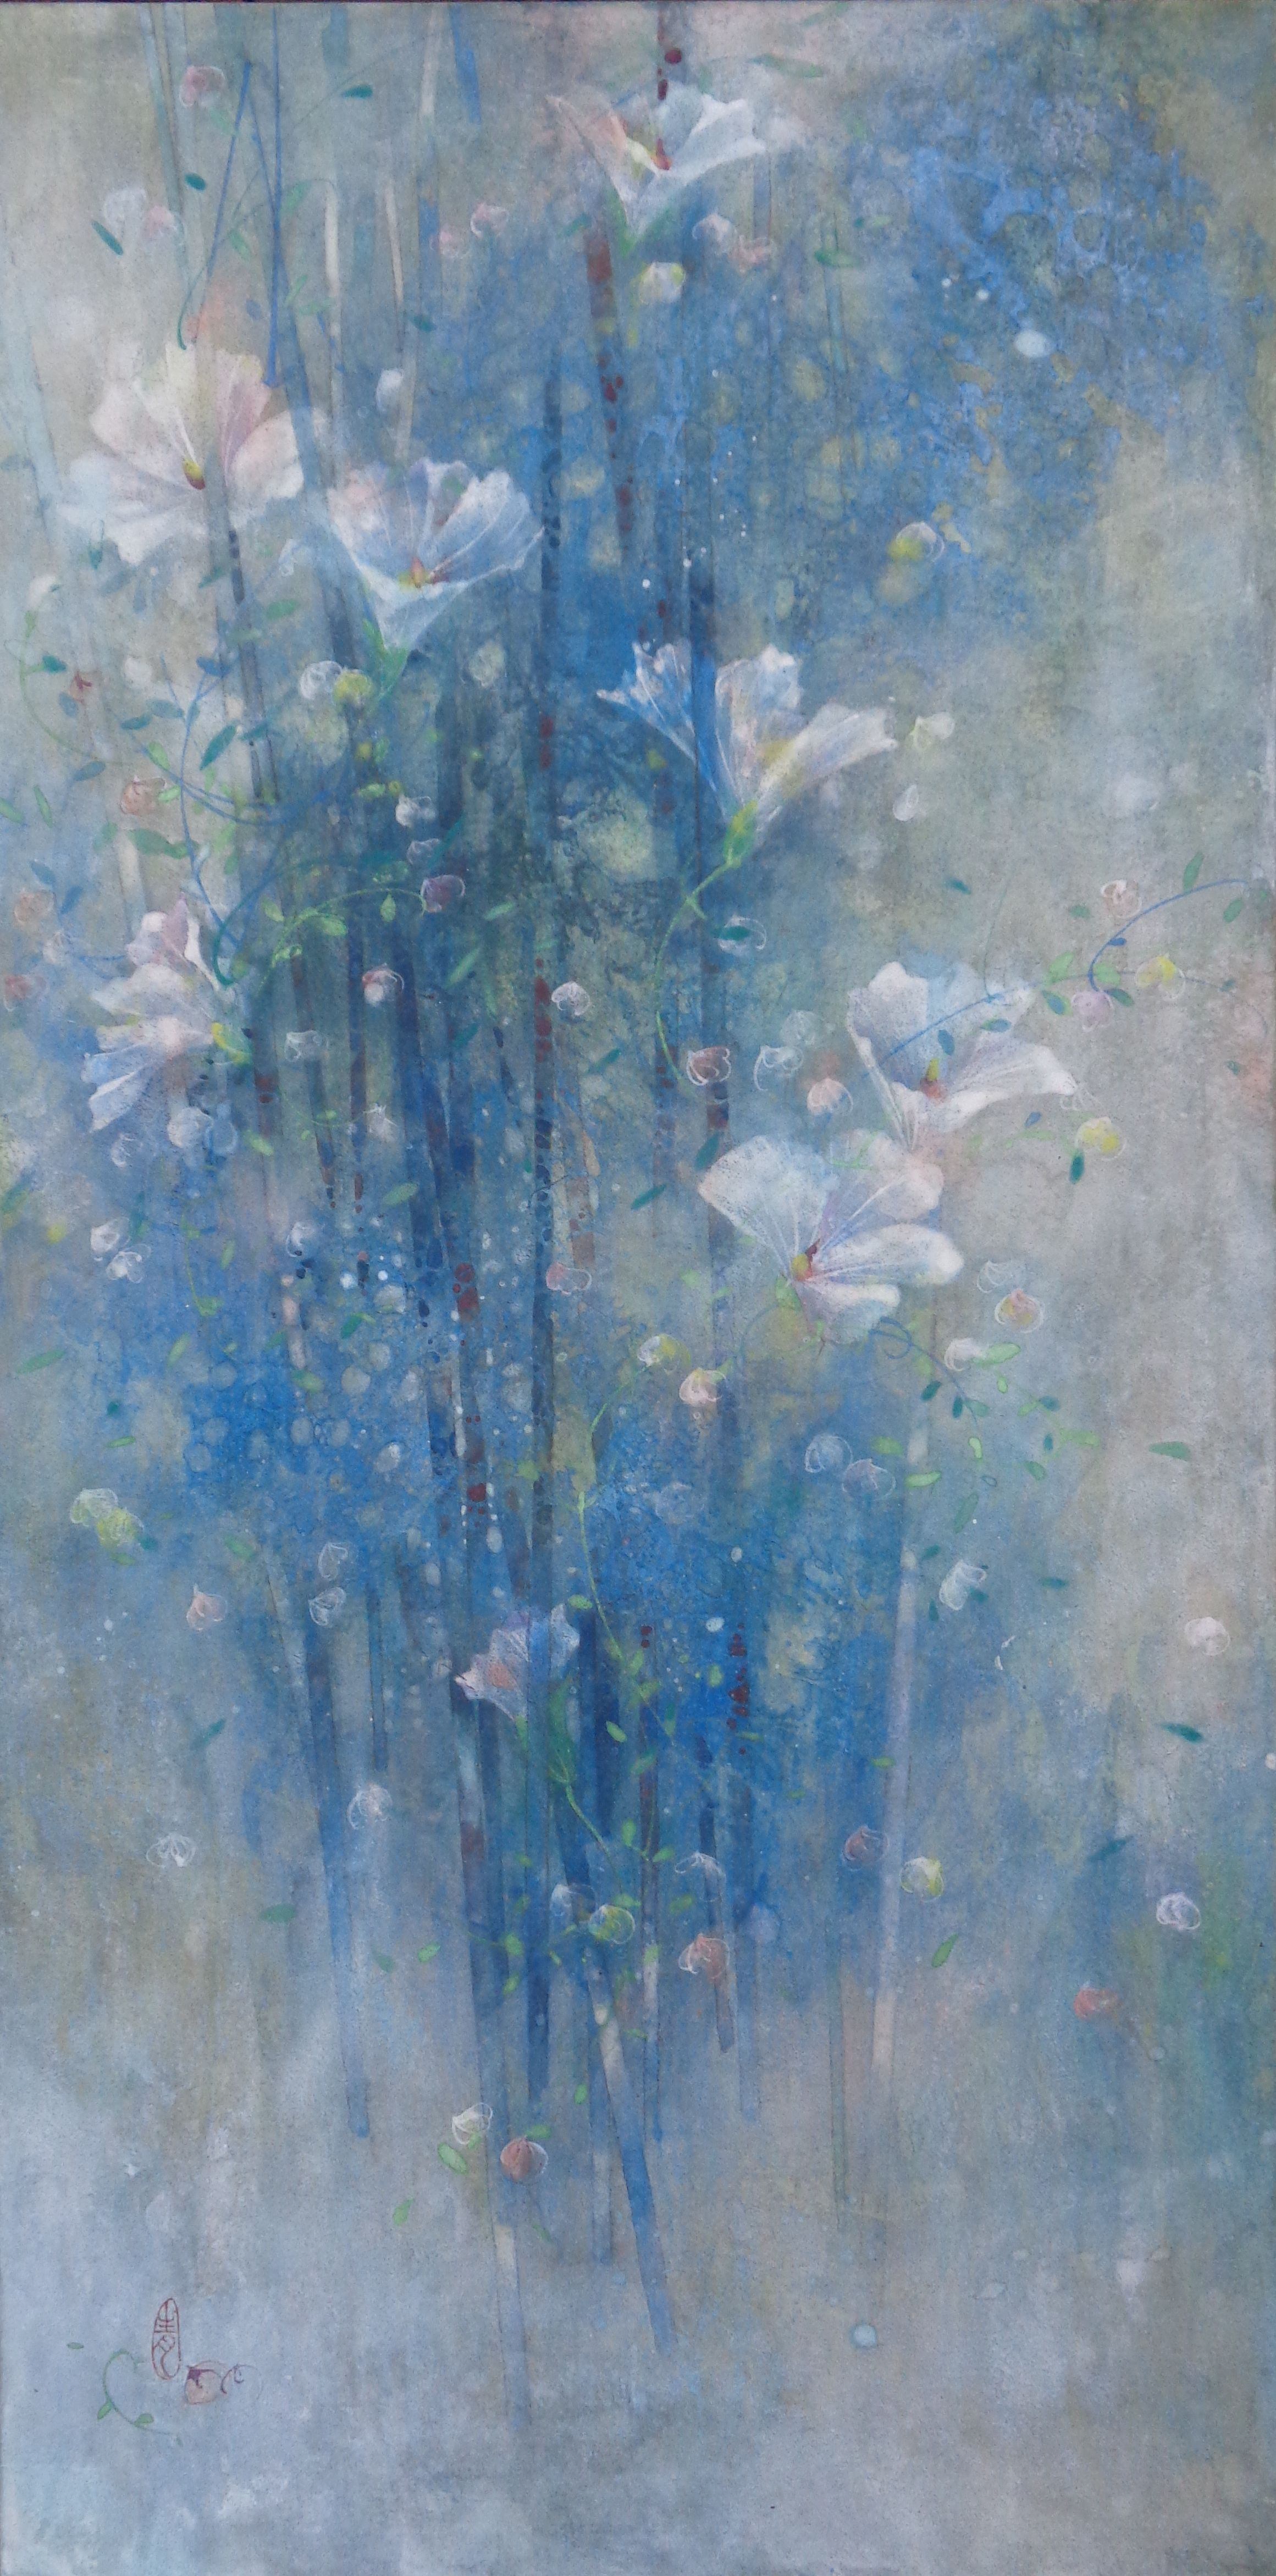 Joy - Chen Yiching - Contemporary painting